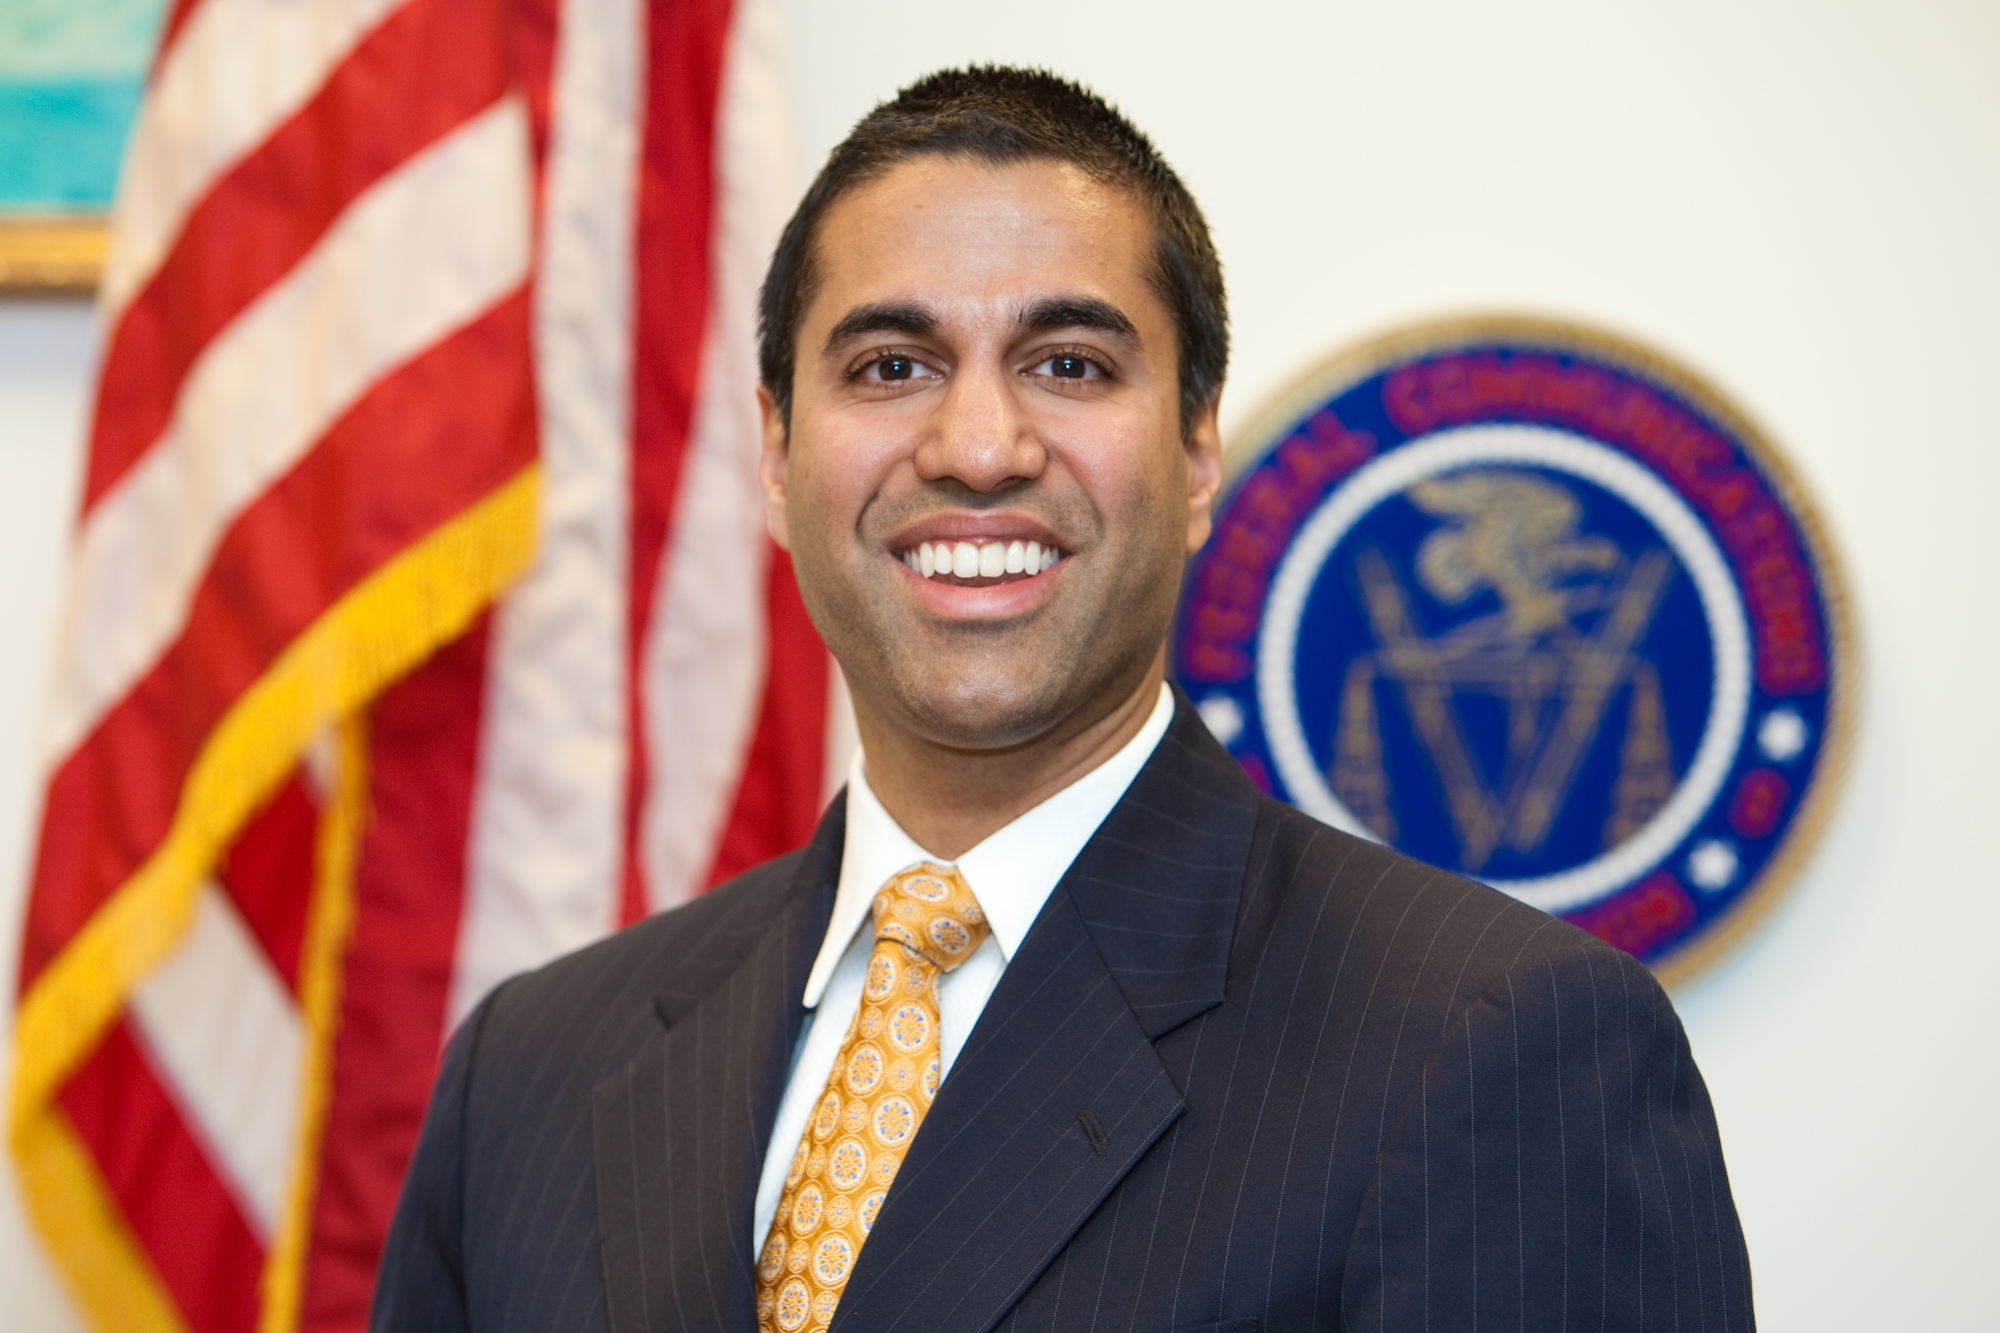 Net neutrality ajit pai FCC cybersecurity